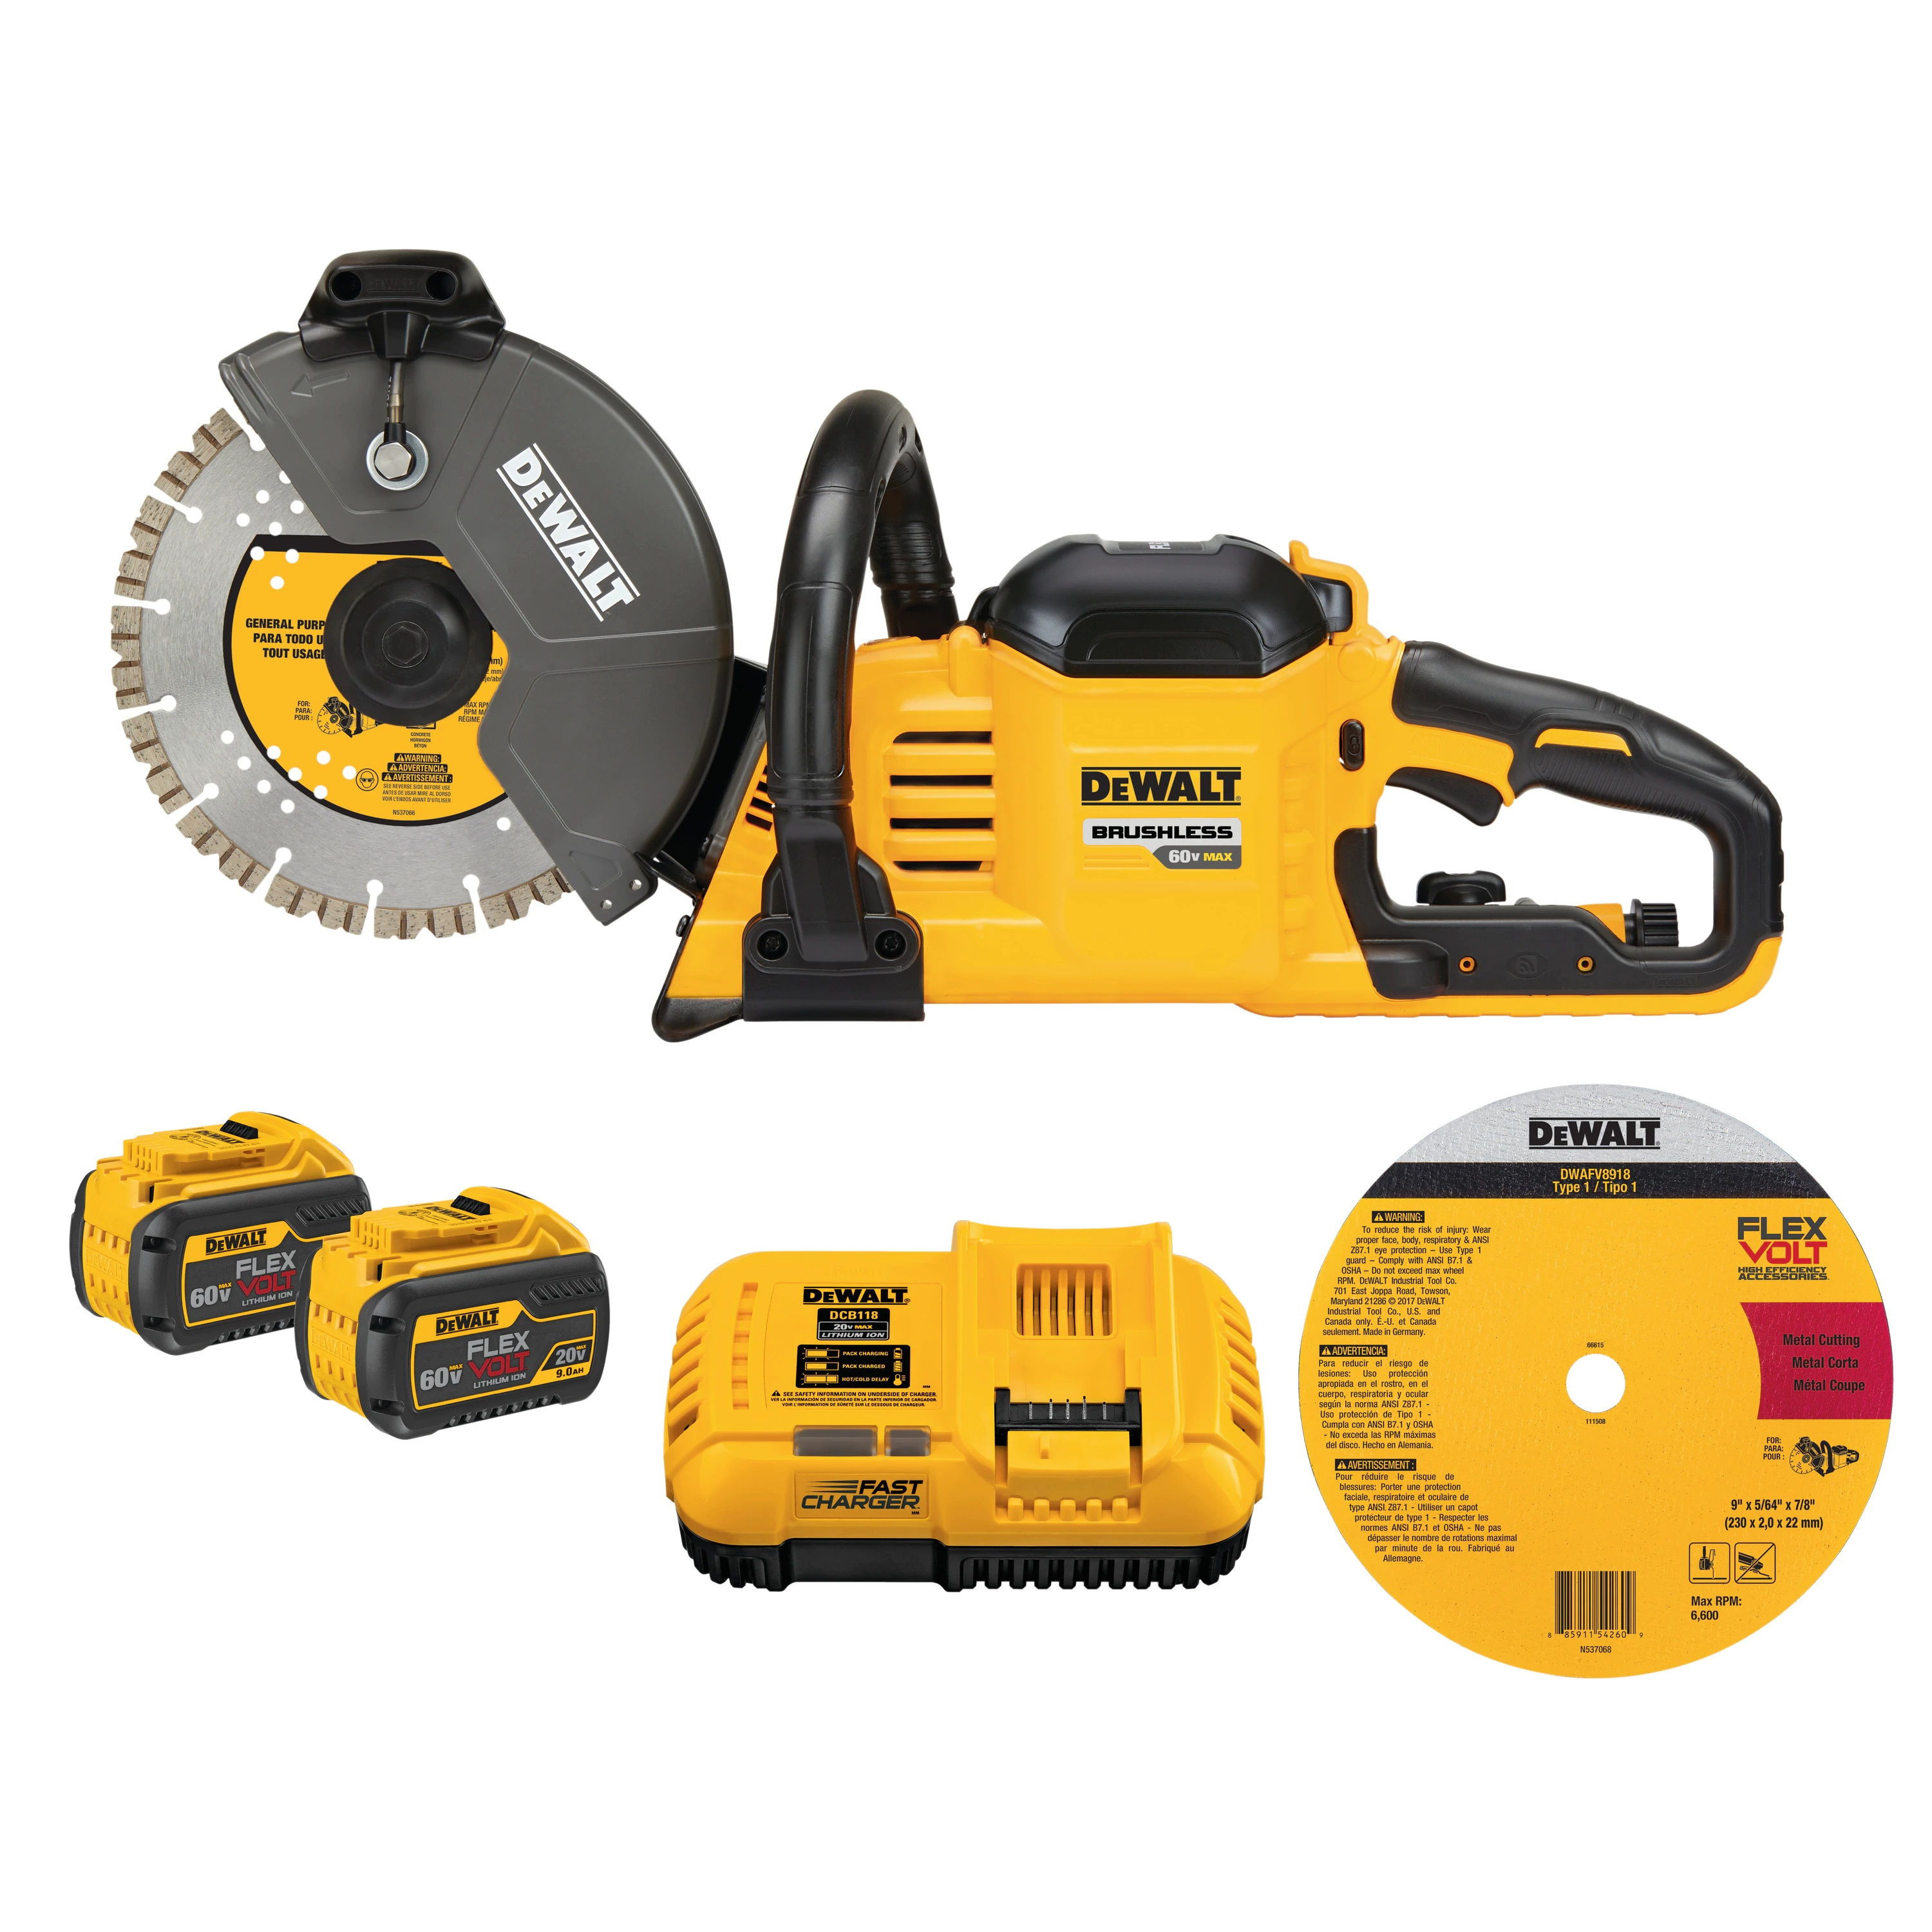 FLEXVOLT® 60V MAX* CORDLESS BRUSHLESS 9 IN. CUT-OFF SAW KIT - Saws